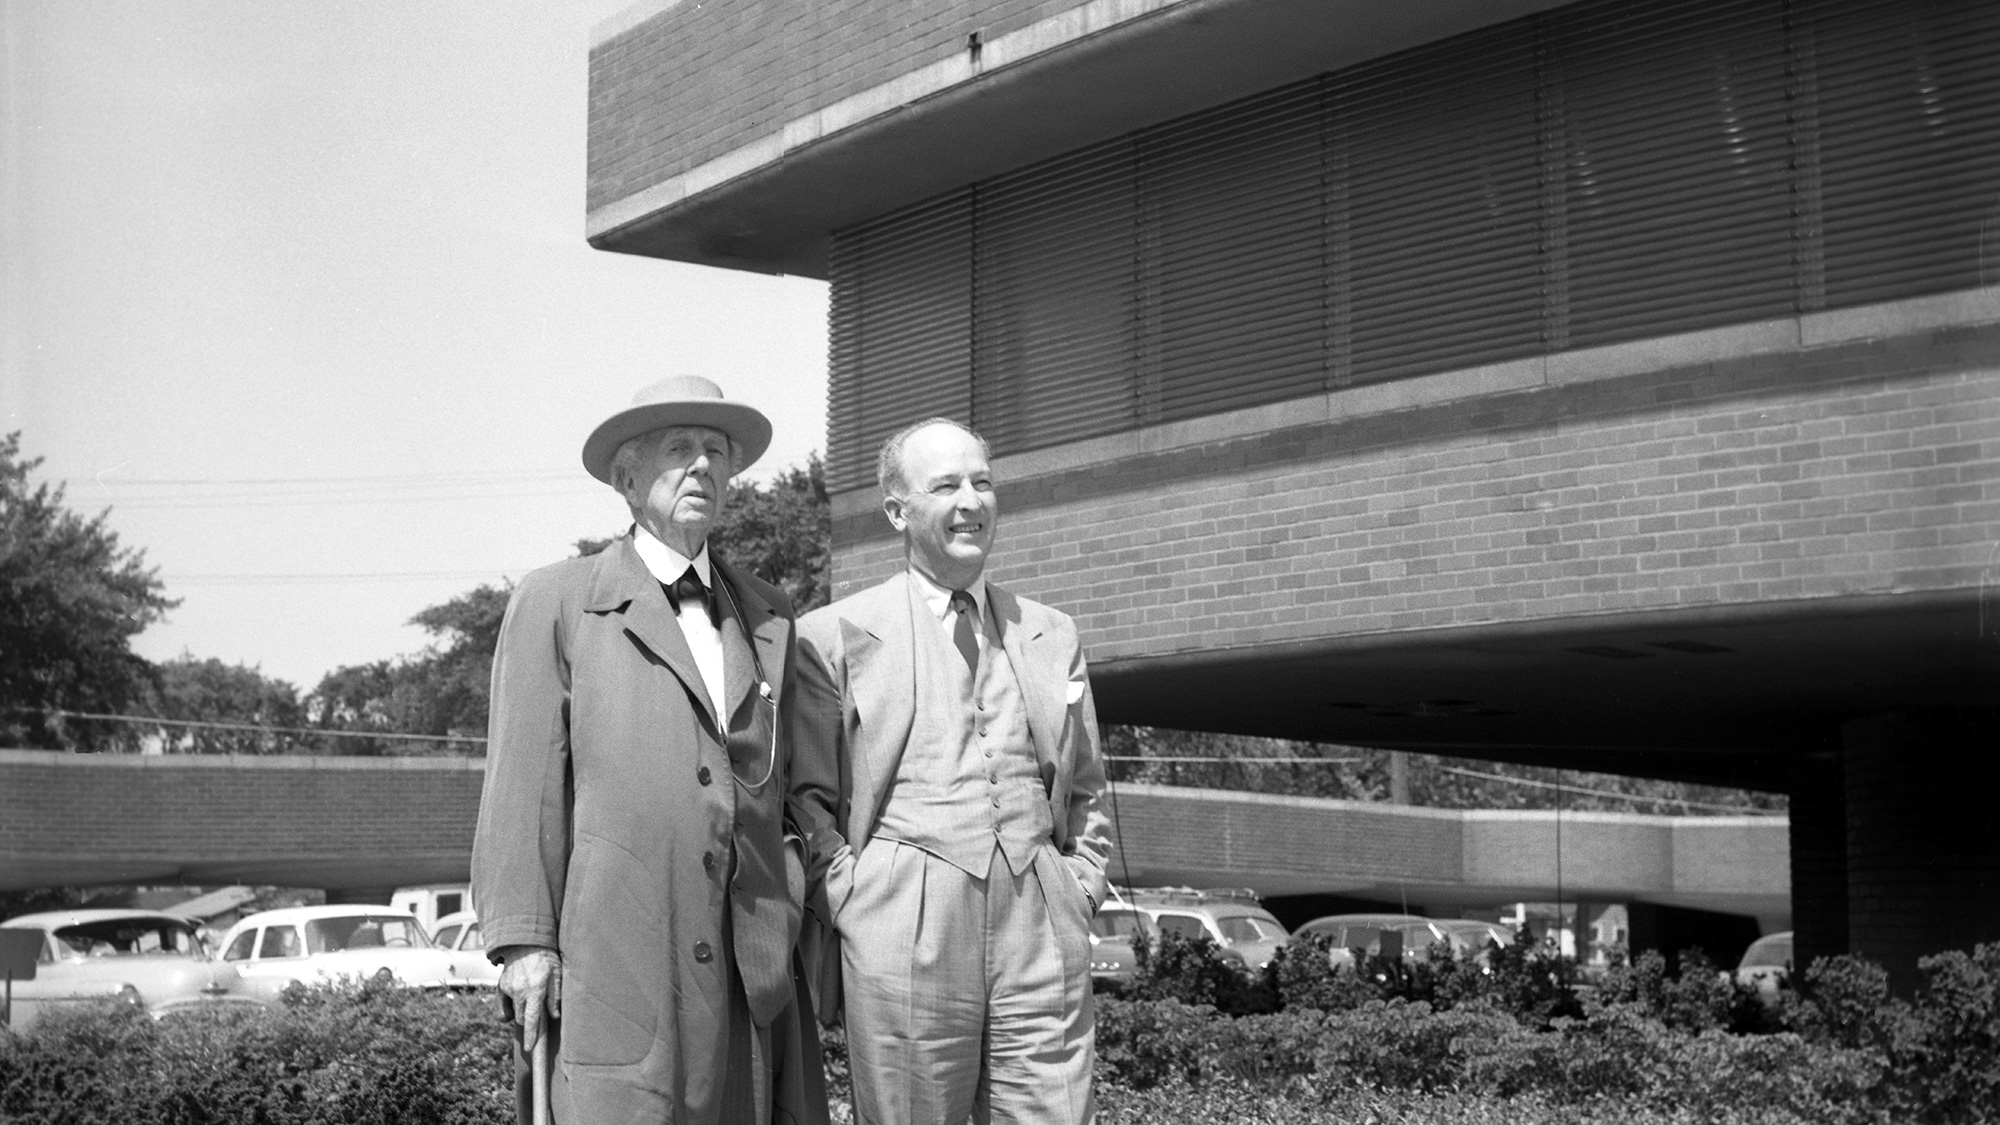 H.F. Johnson, Jr. and Frank Lloyd Wright